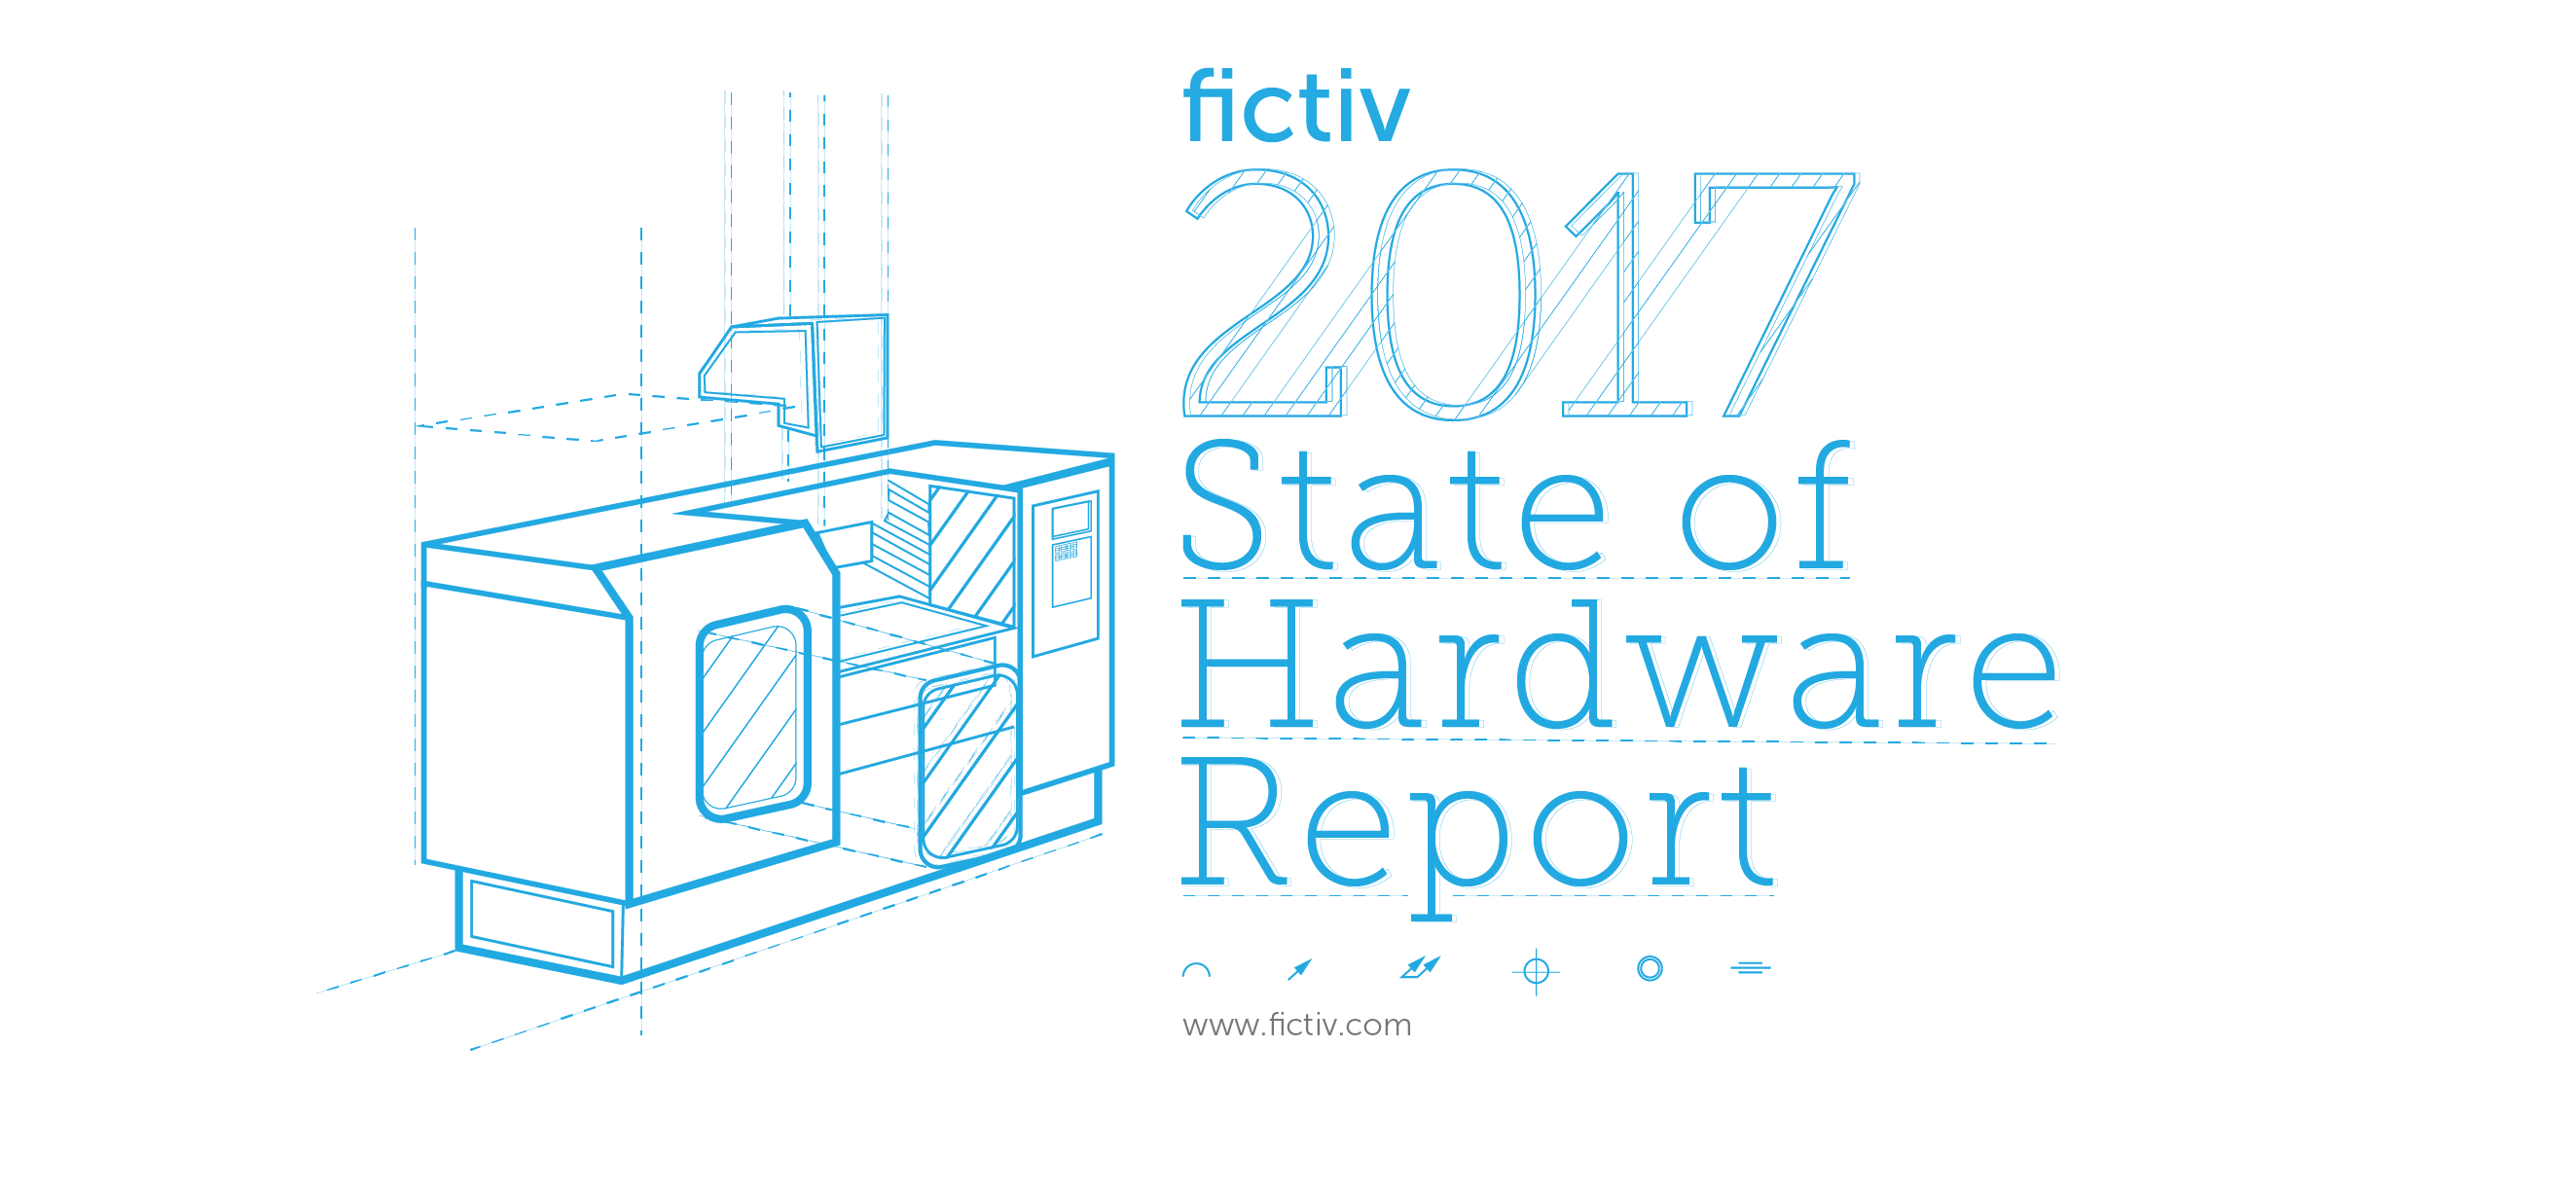 Fictiv 2017 State of Hardware Report